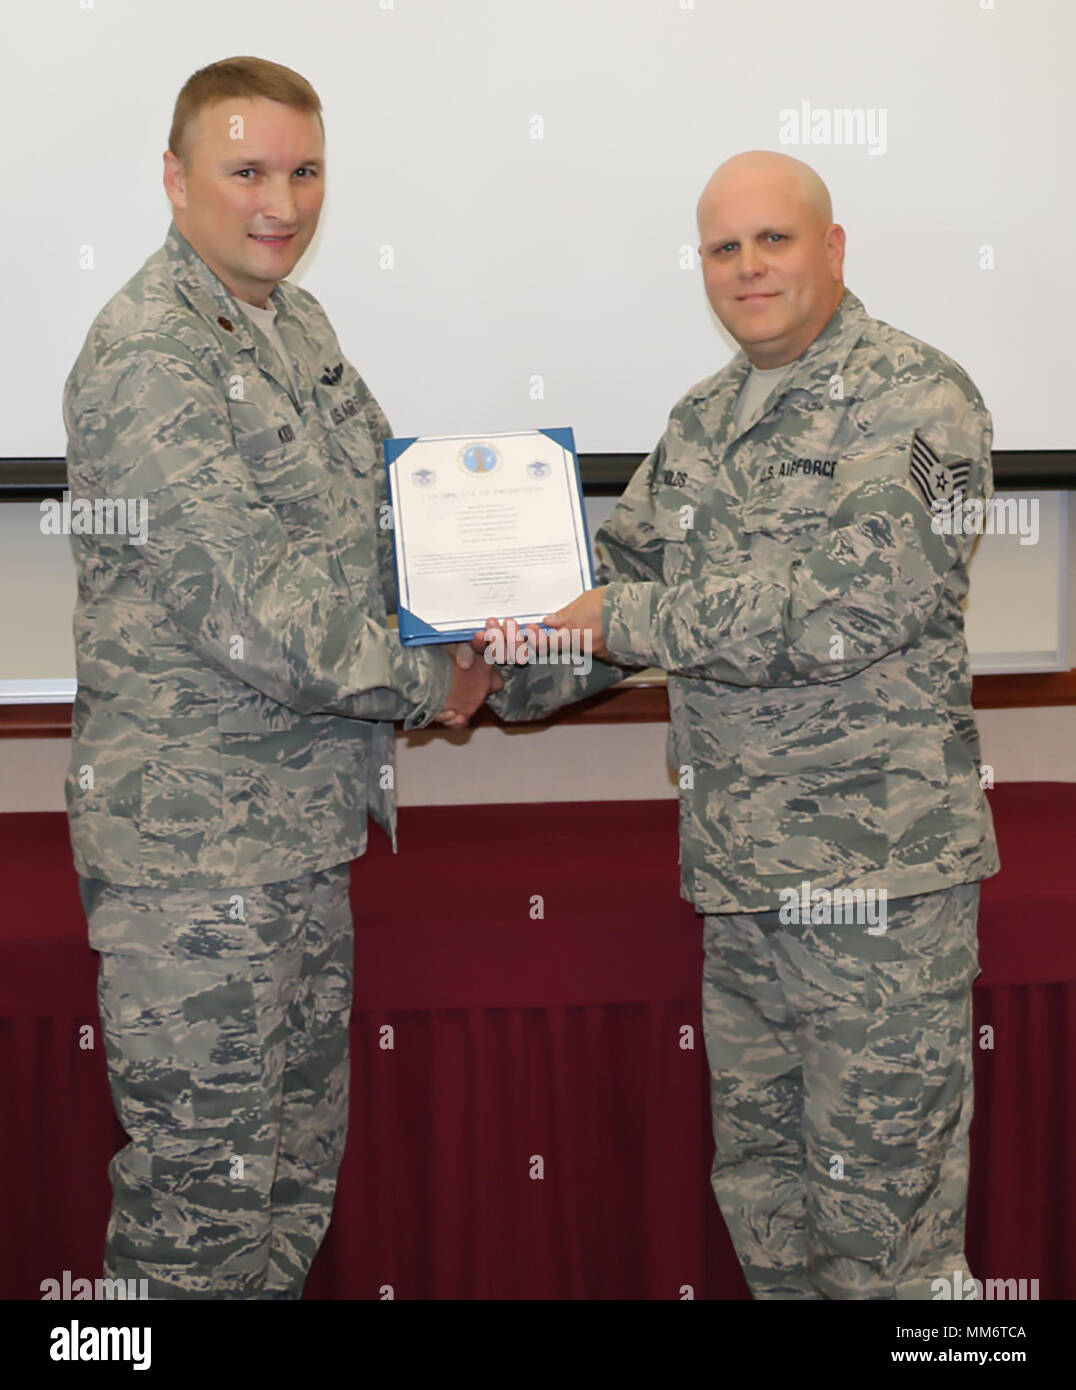 New York Air National Guard Master Sgt. Corey Reynolds, right, was promoted on Sept. 13. Maj. Michael Kidd, an assistant flight commander with the 224th Air Defense Squadron, served as the promotion officer and is pictured handing Master Sgt. Reynolds his promotion certificate. New York Air National Guard promotions recognize an individual's capability for additional responsibility and leadership. - Stock Image